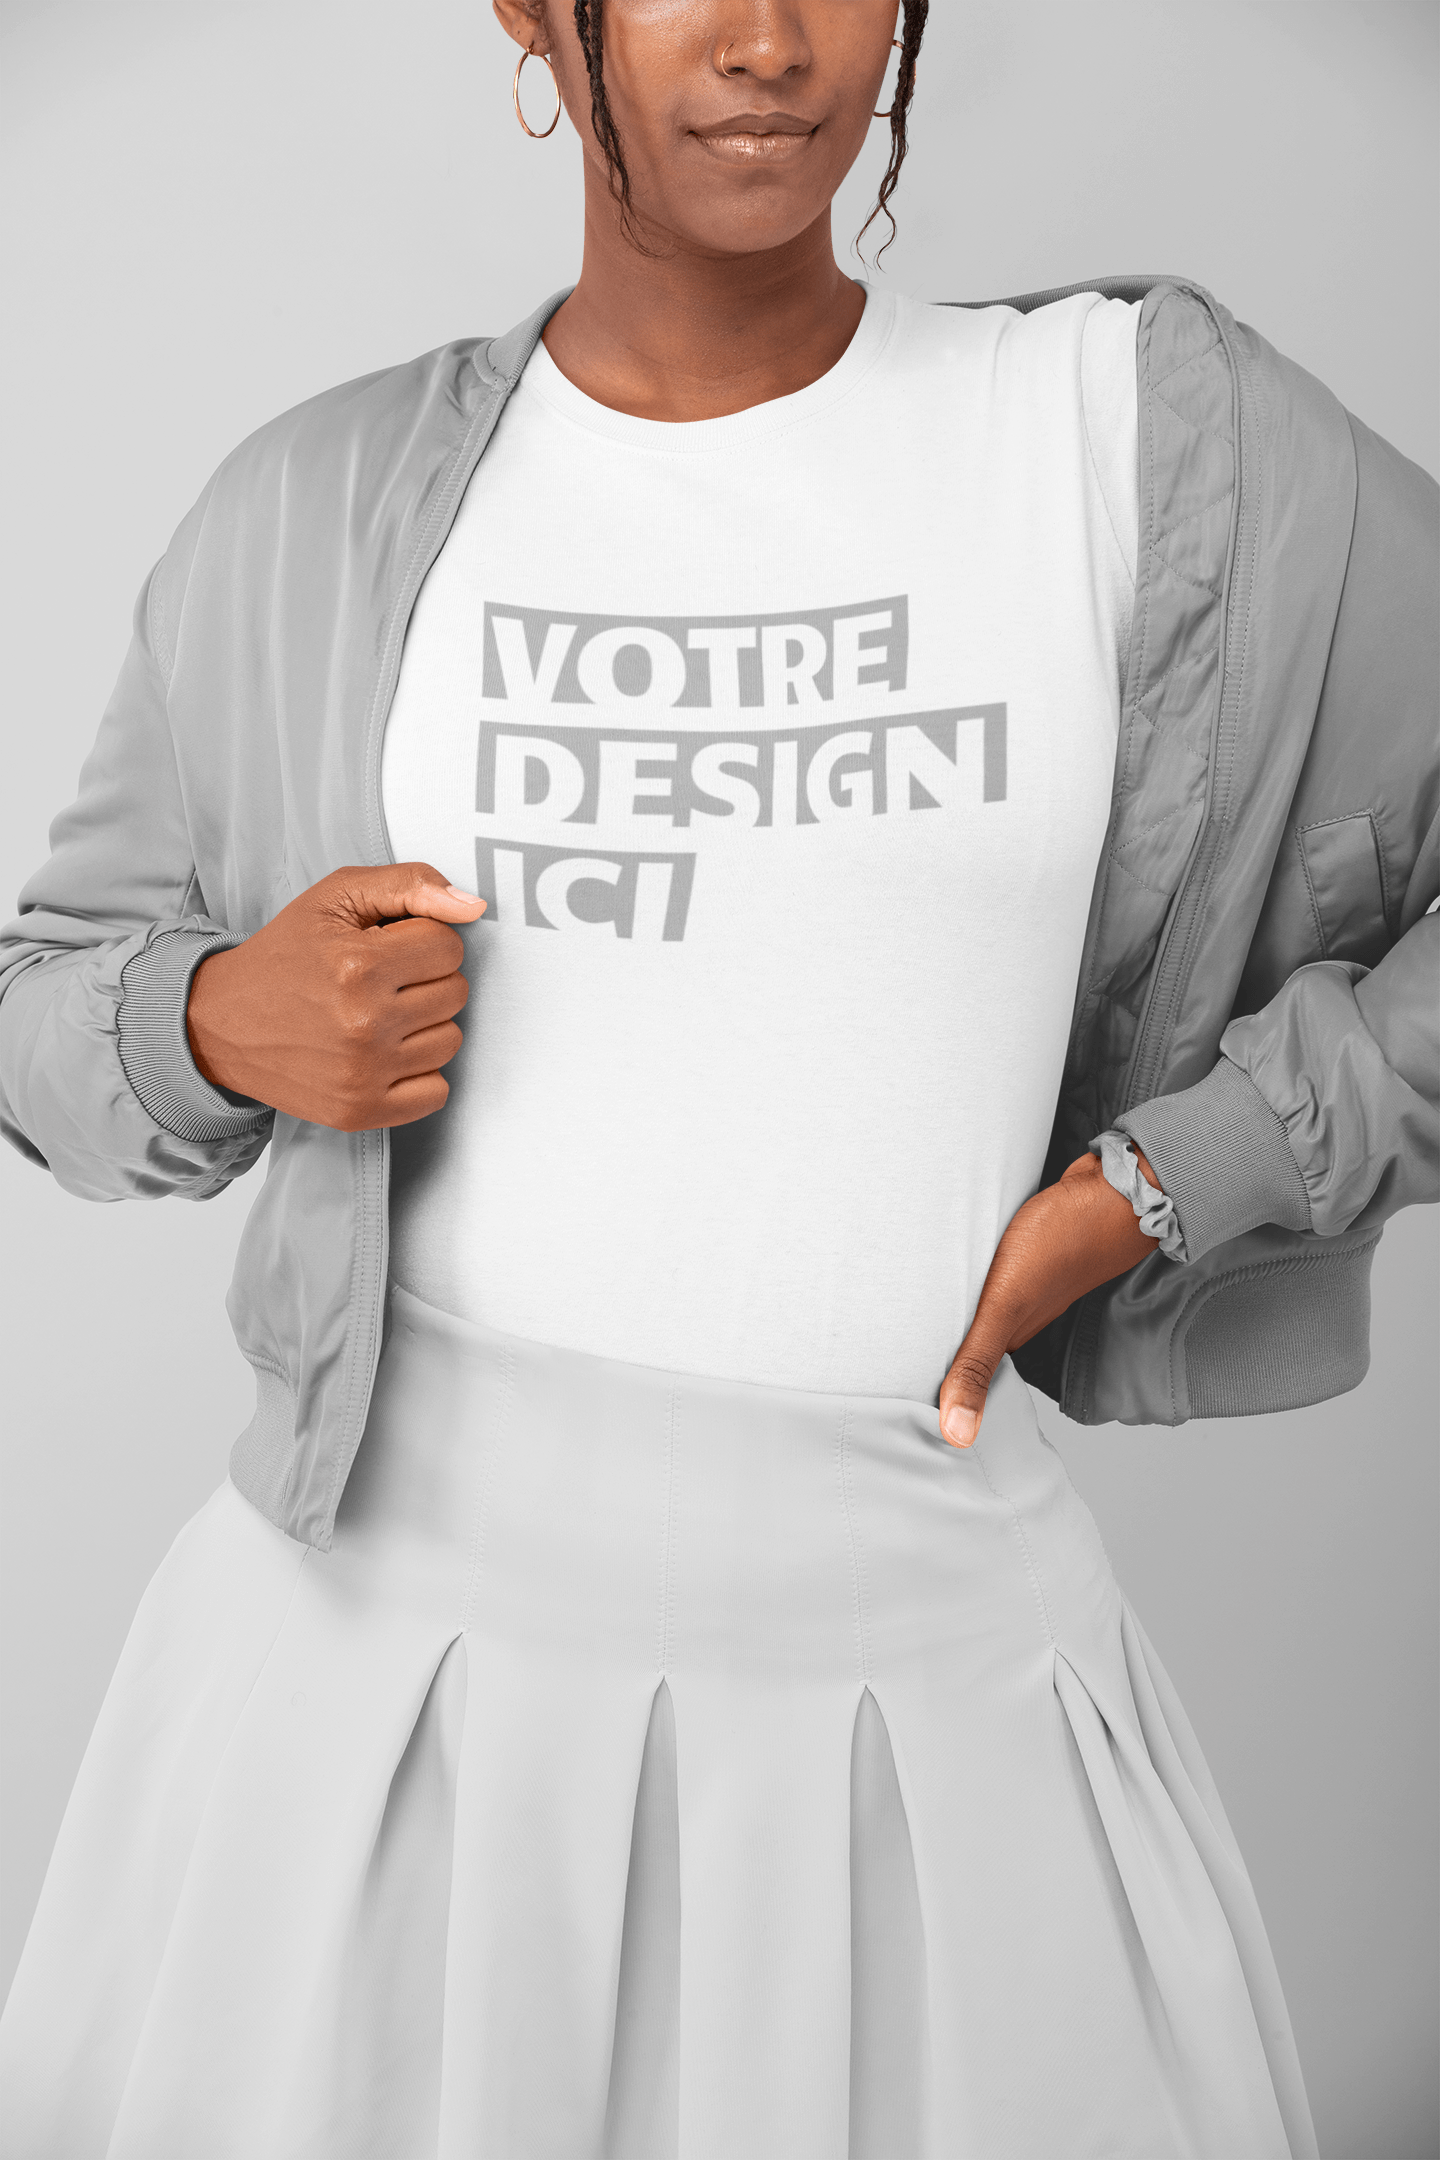 t-shirt-mockup-of-a-woman-in-a-monochromatic-outfit-posing-at-a-studio-32795